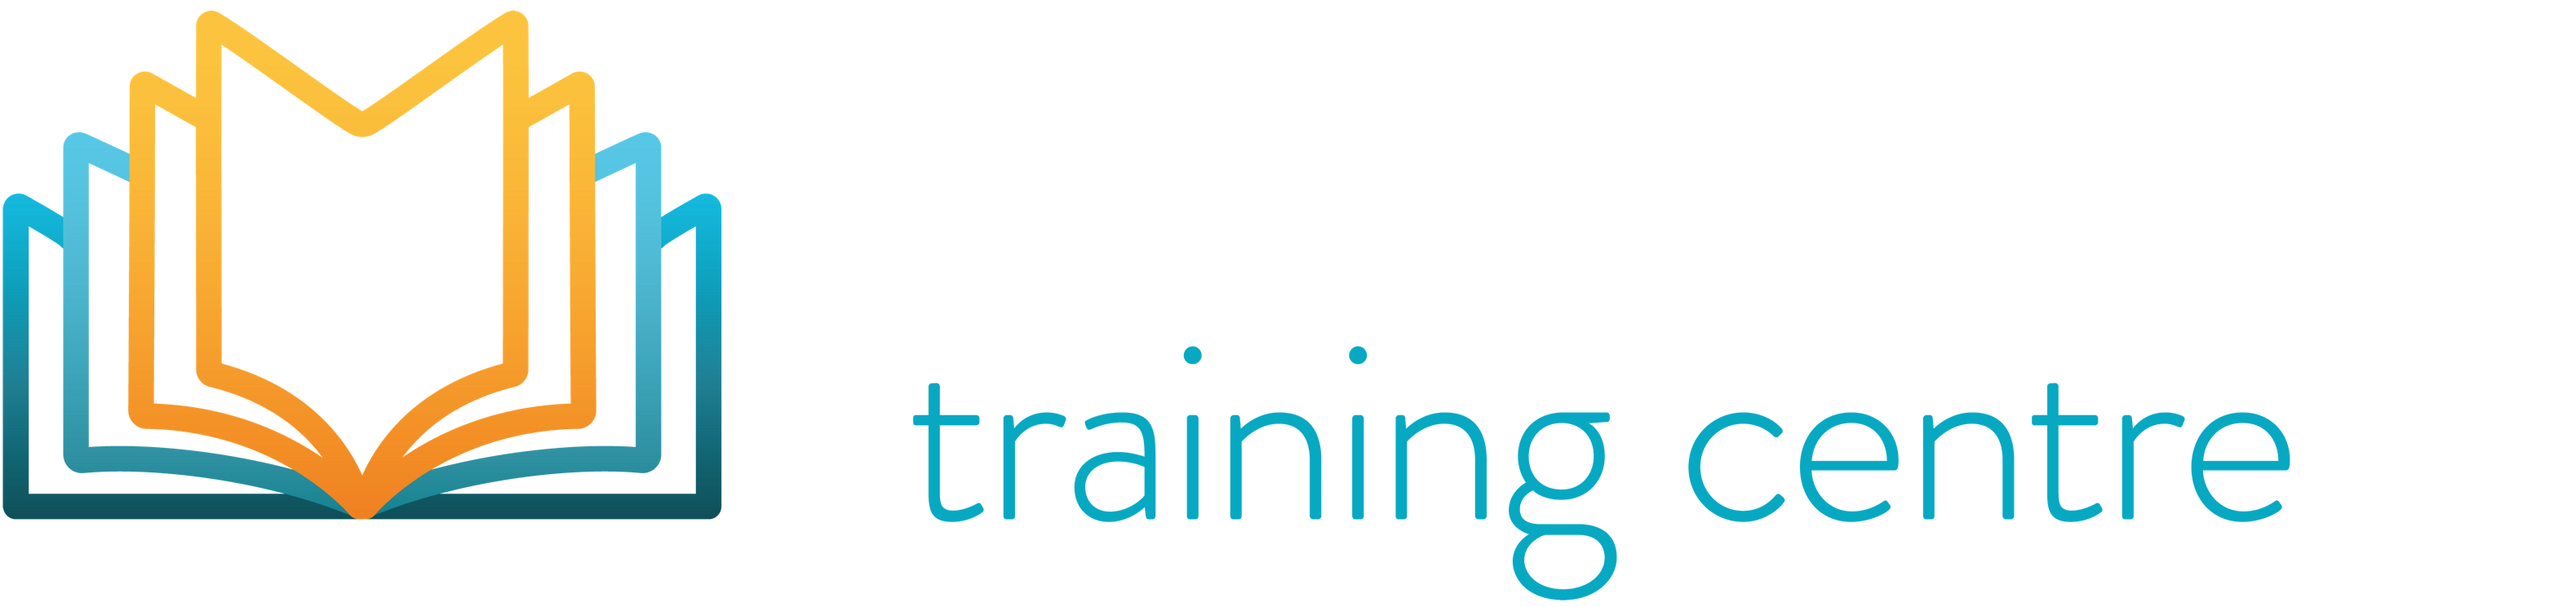 Veterinary Training Centre logo